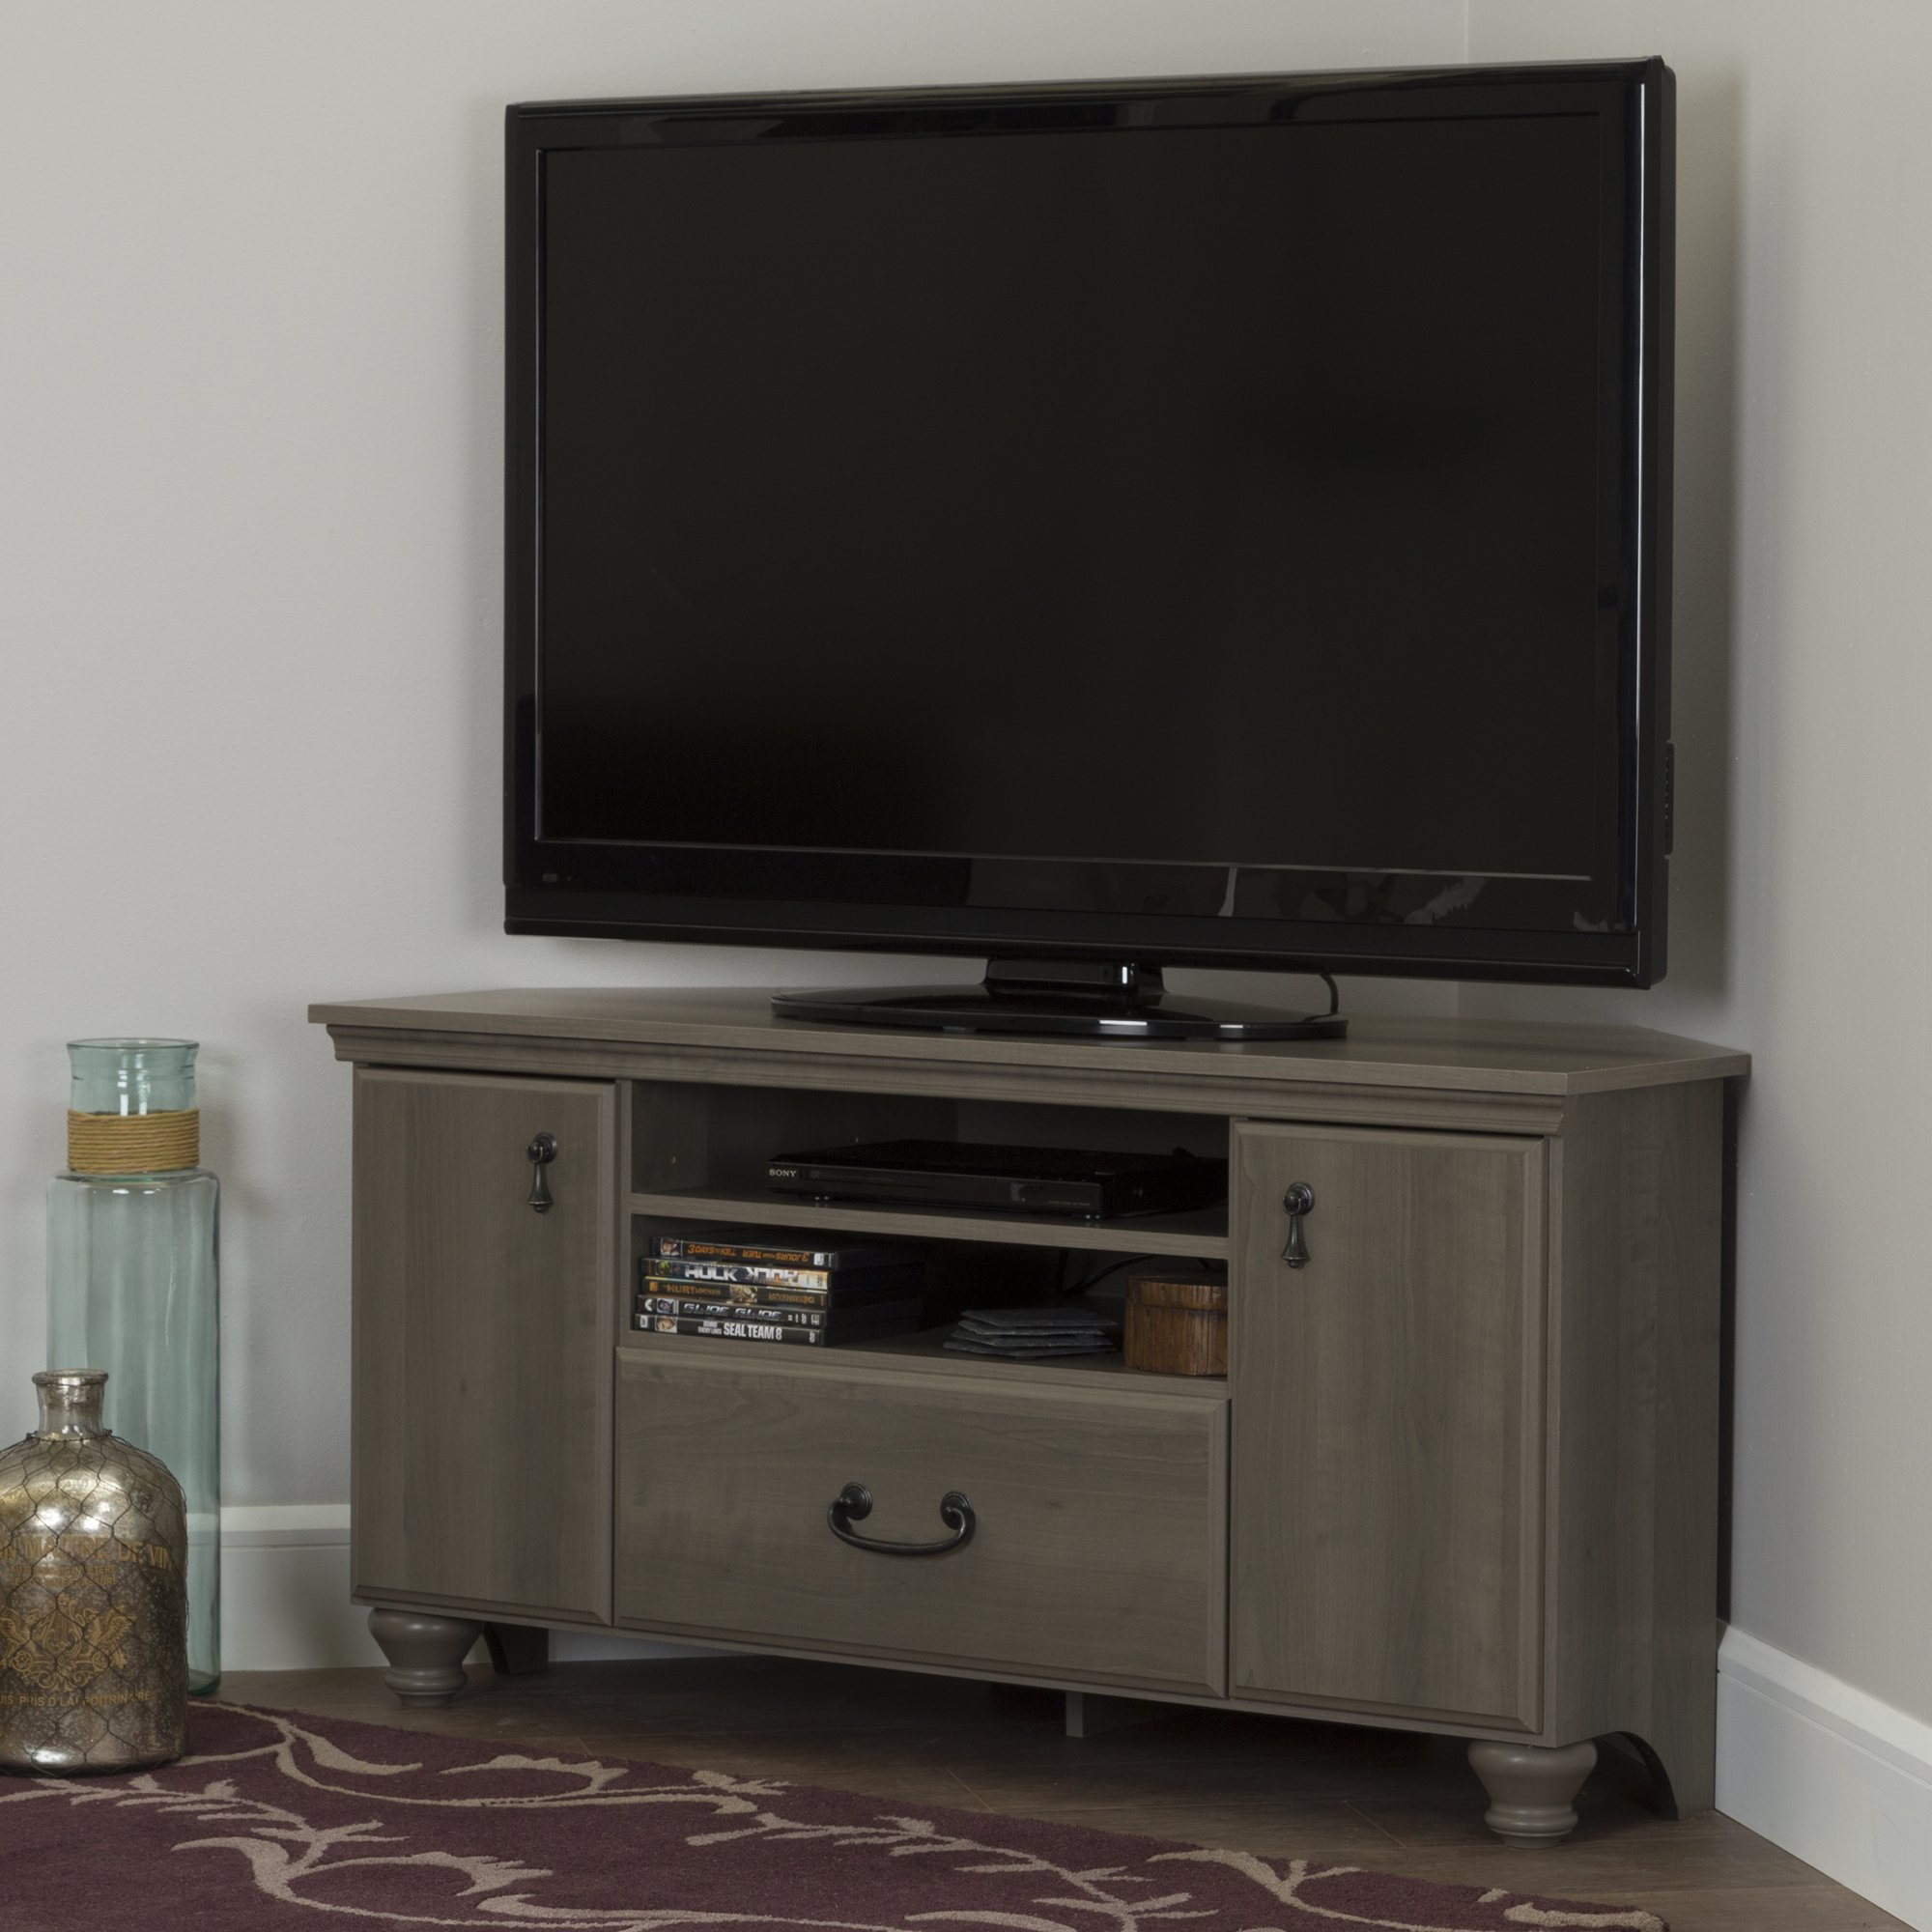 Noble Corner TV Stand - Fits TVs Up to 55'' Wide - Gray Maple - by South Shore